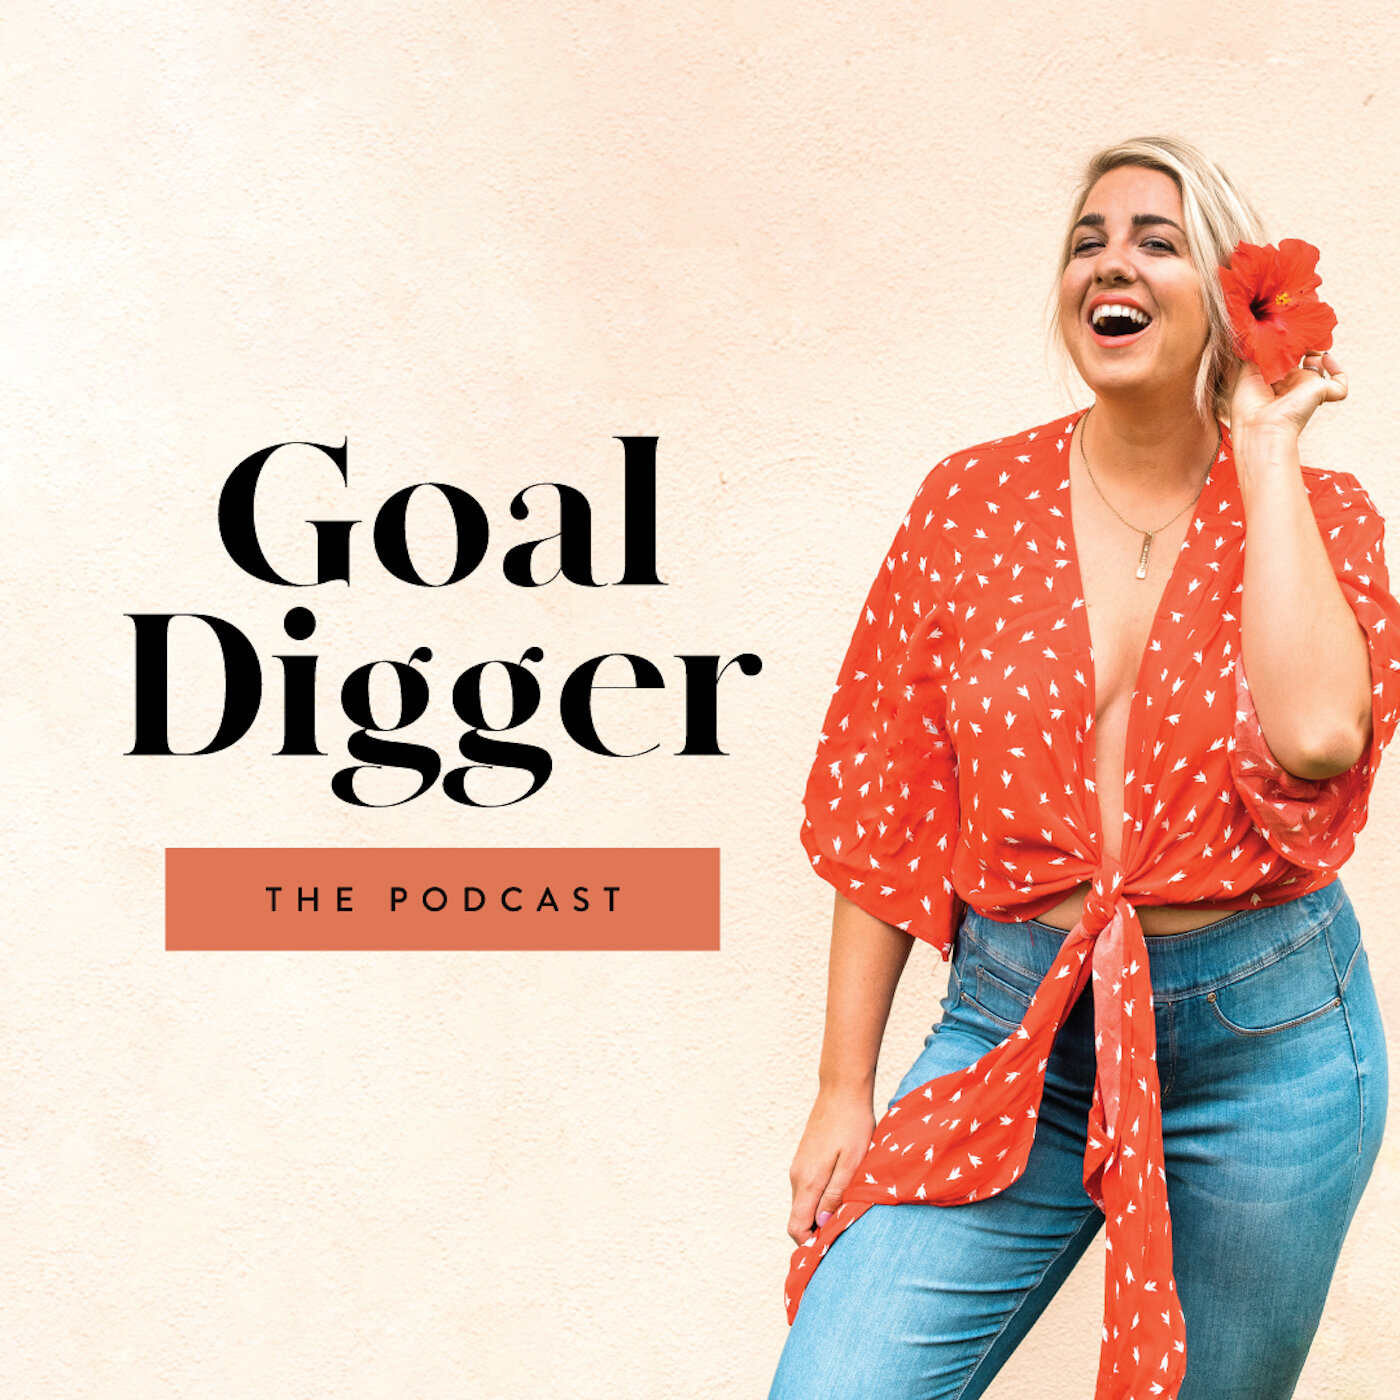 Goal Digger Podcast with Jenna Kutcher